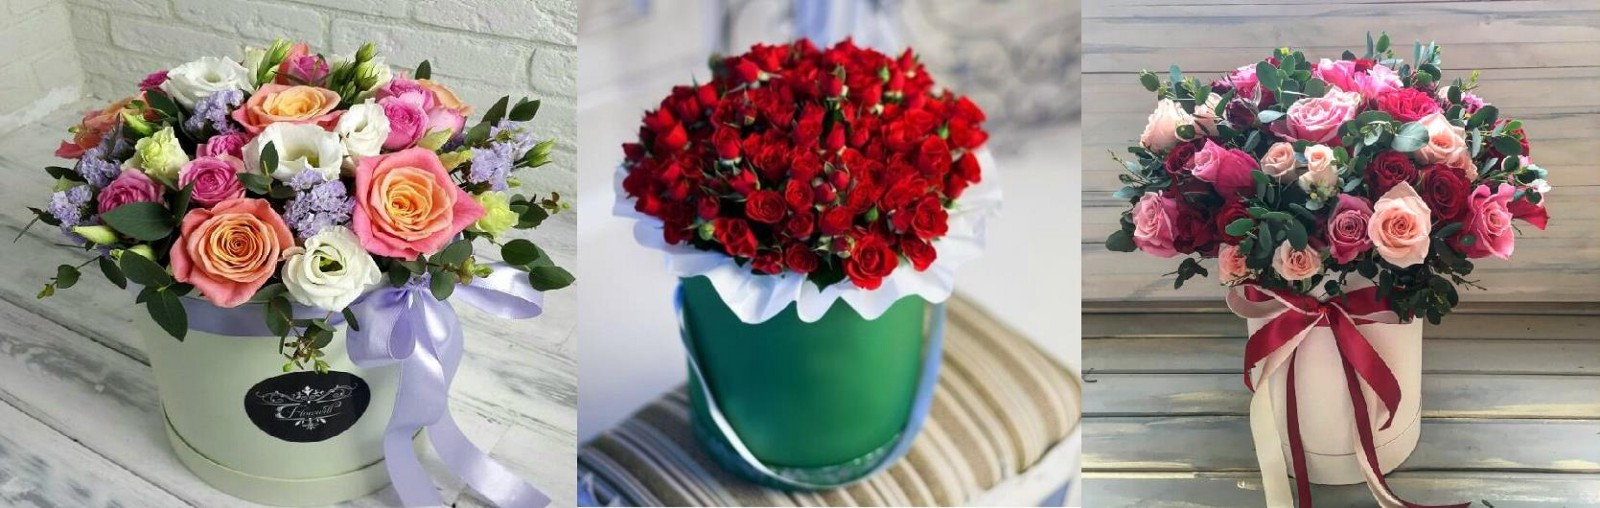 How to choose a bouquet for your business partner flowwow medium what is important the recipient does not have to look for a vase for them because in each composition there is a floristic sponge that feeds the flowers izmirmasajfo